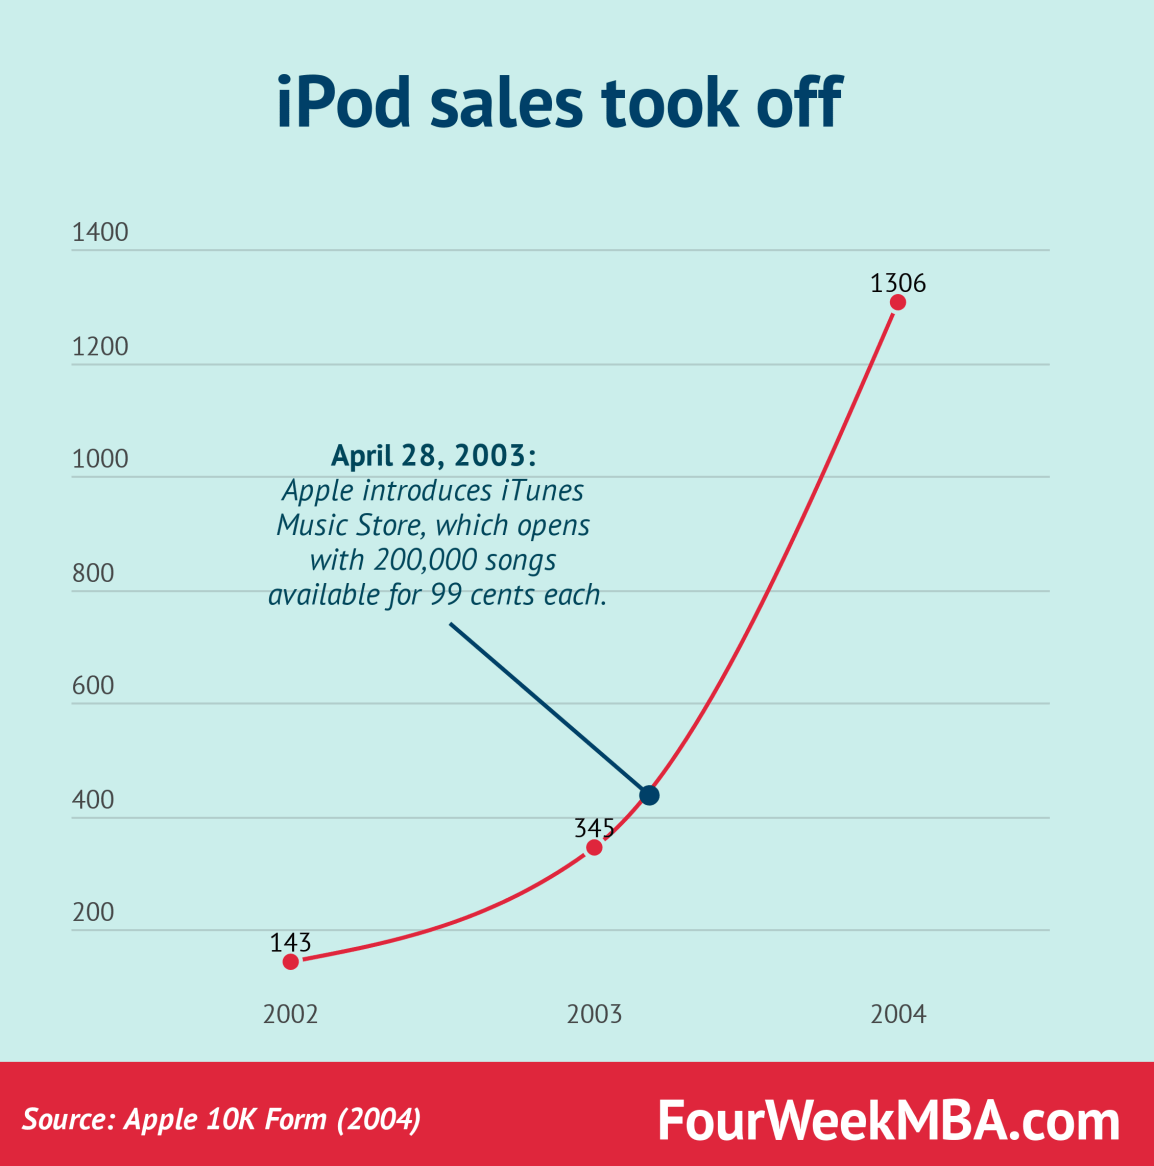 ipod-sales-took-off-2004